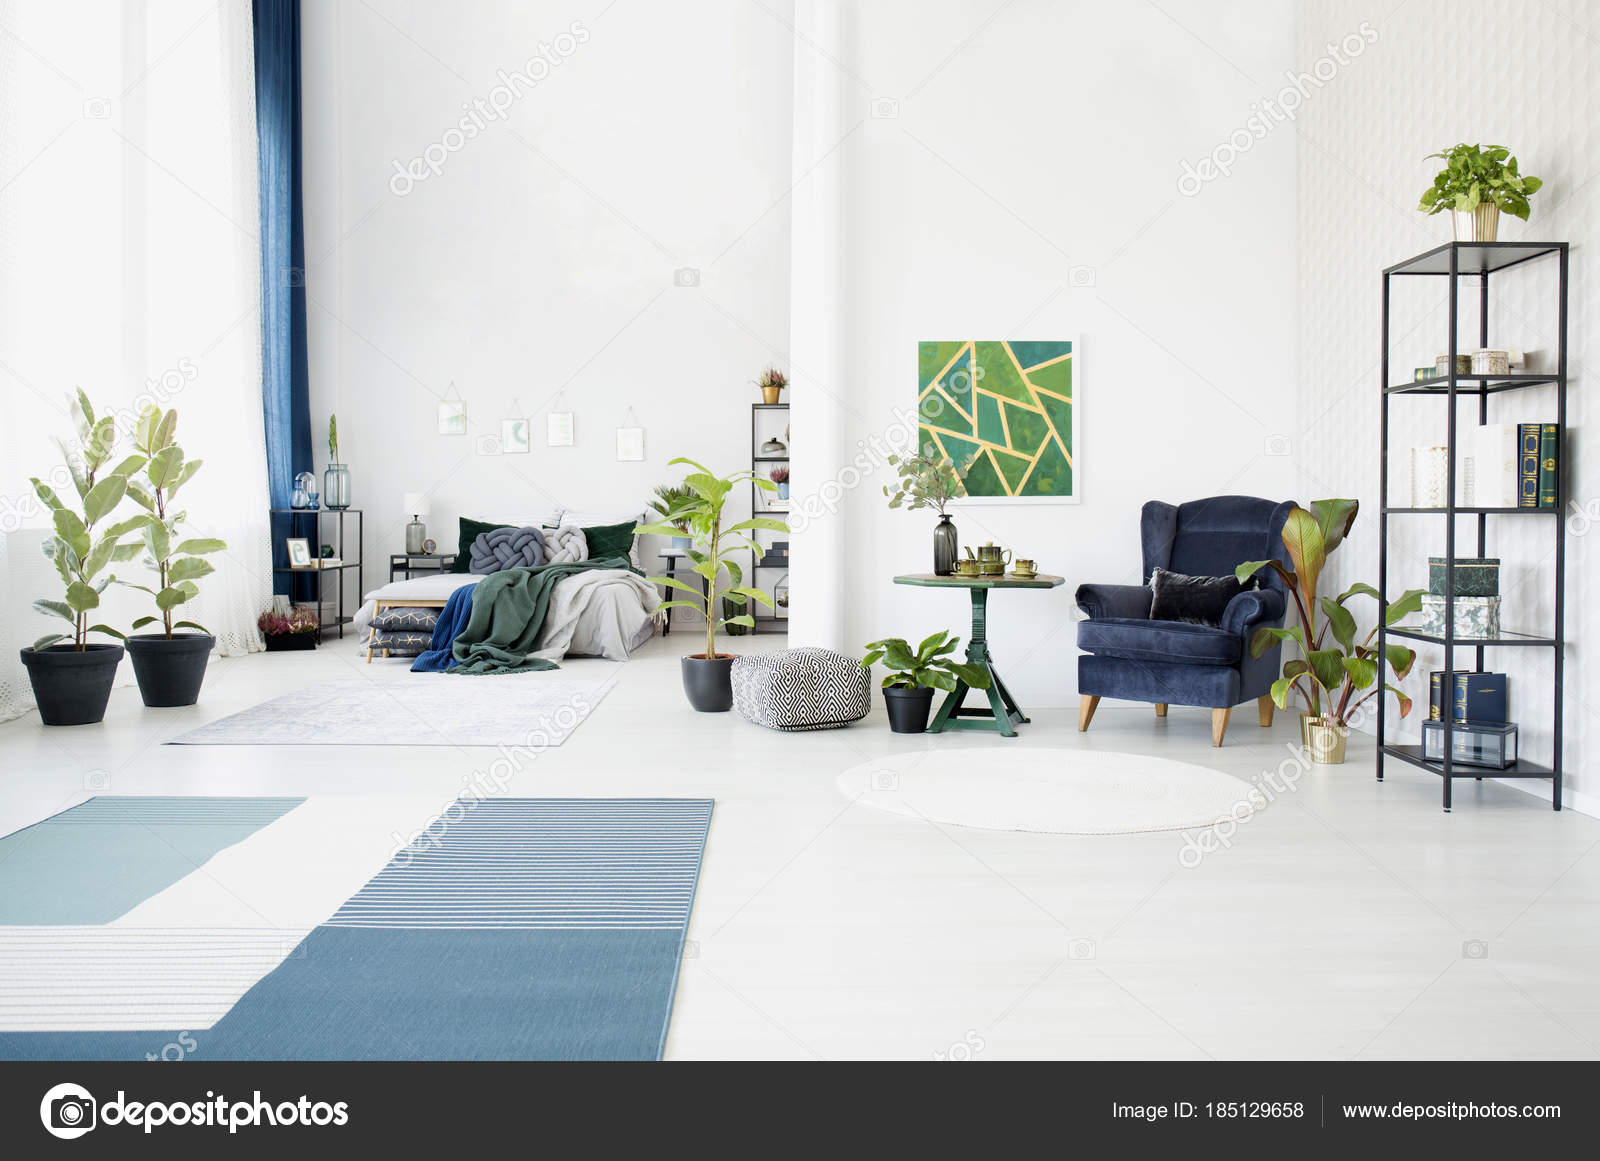 Green painting in open space — Stock Photo © photographee.eu #185129658